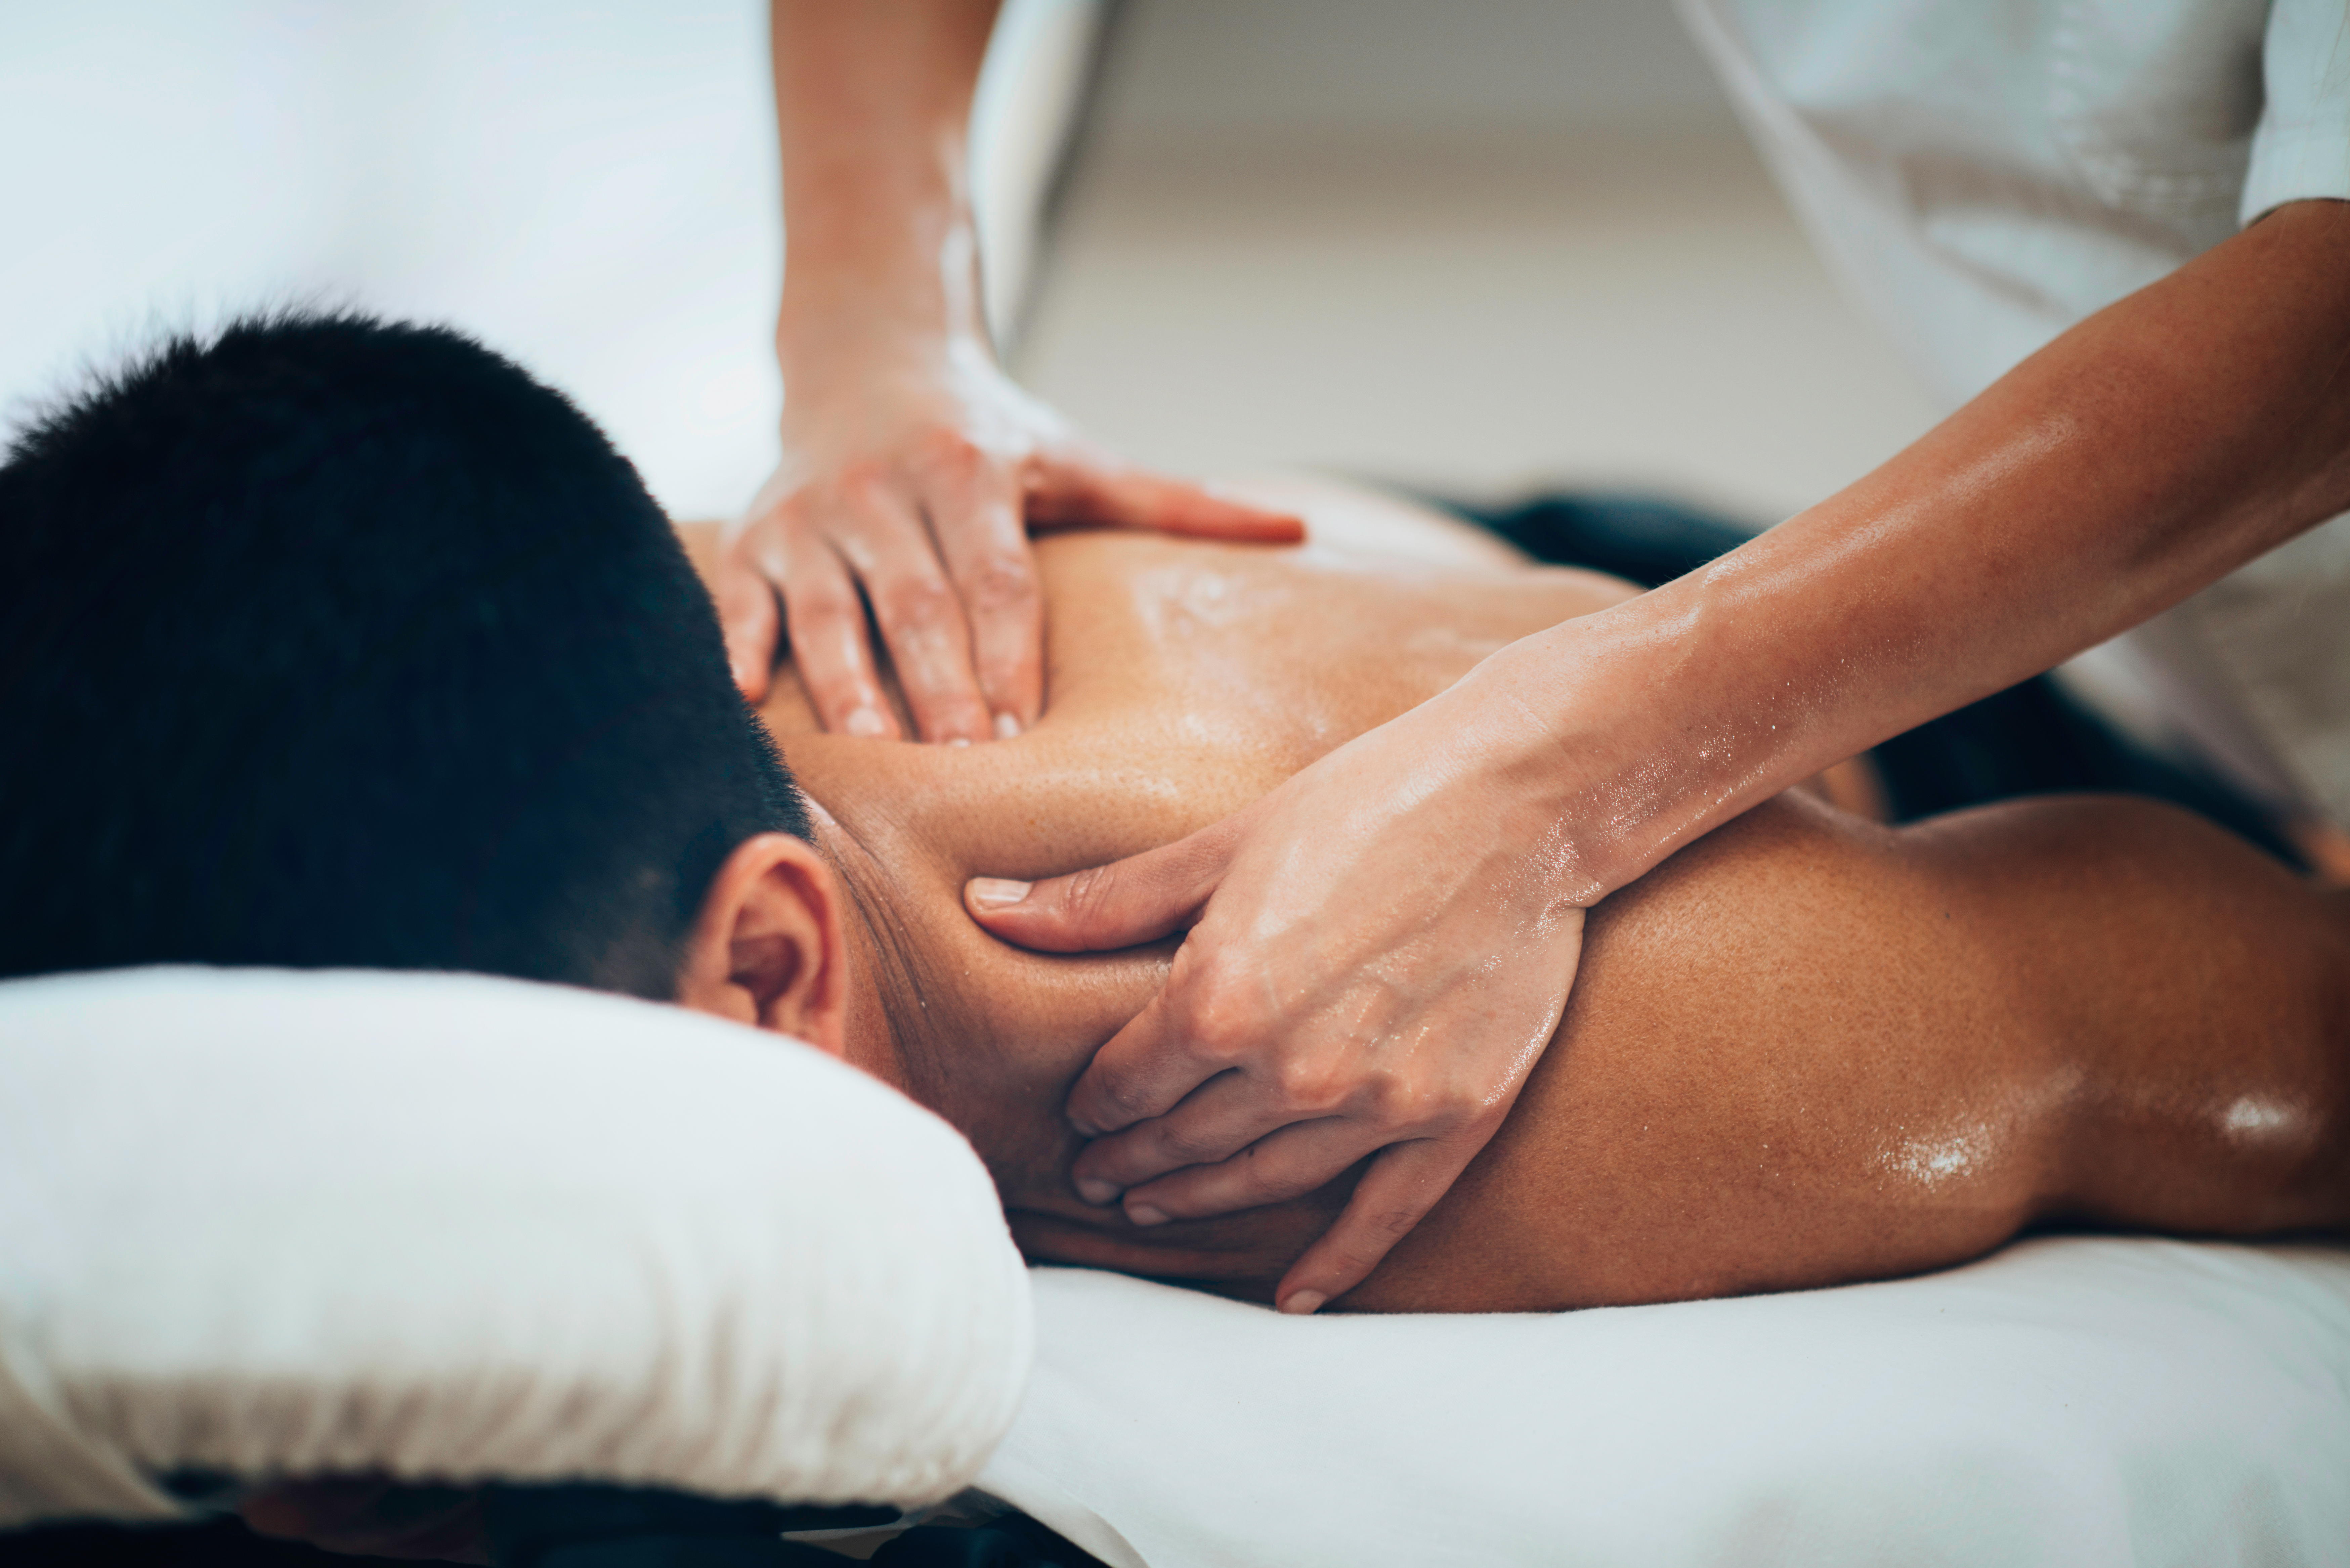 Sports massage deployed by physical therapist massaging shoulder region